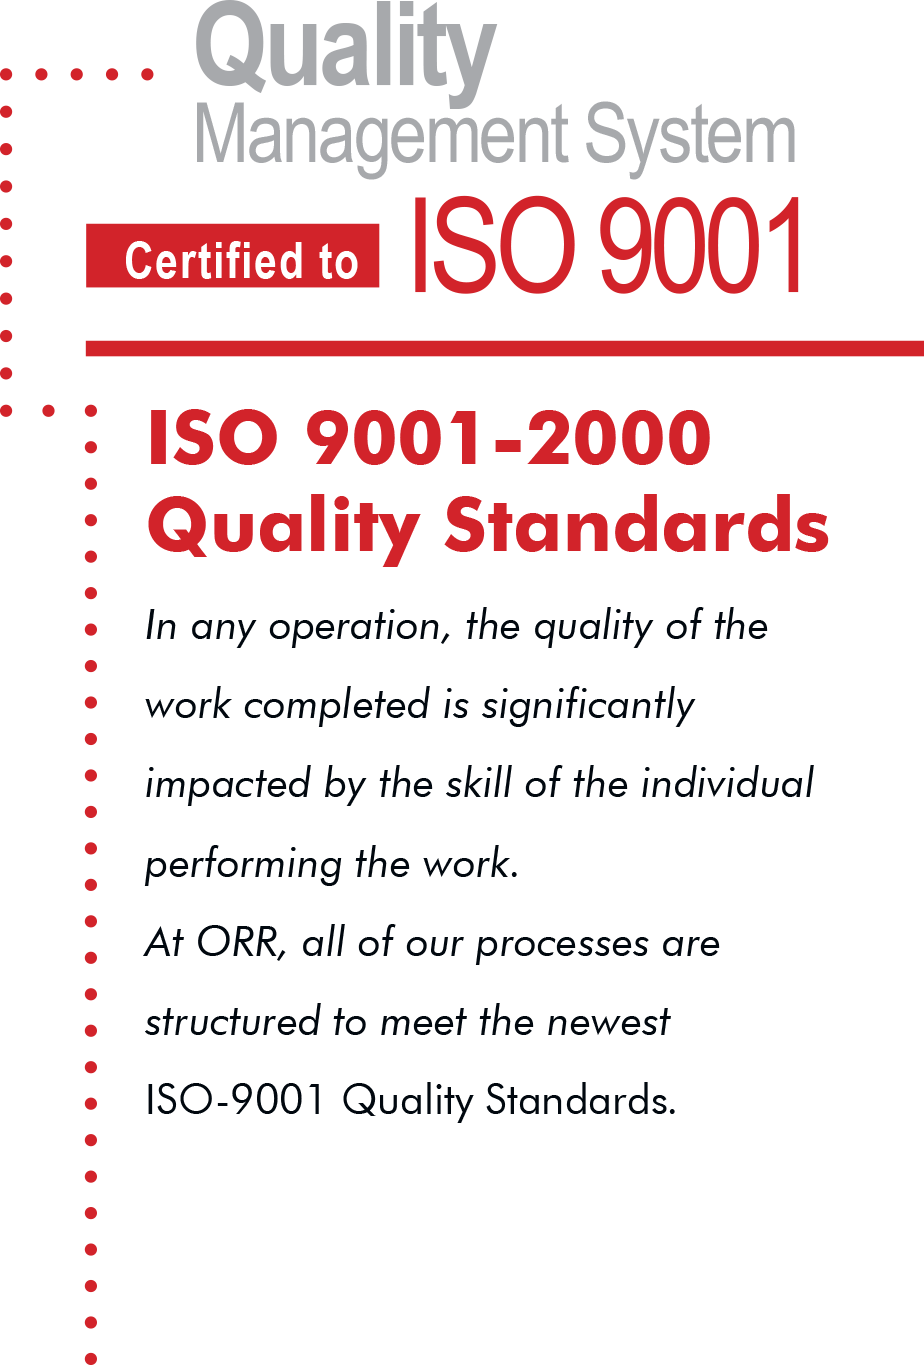 Quality Management System Certified to ISO 9001